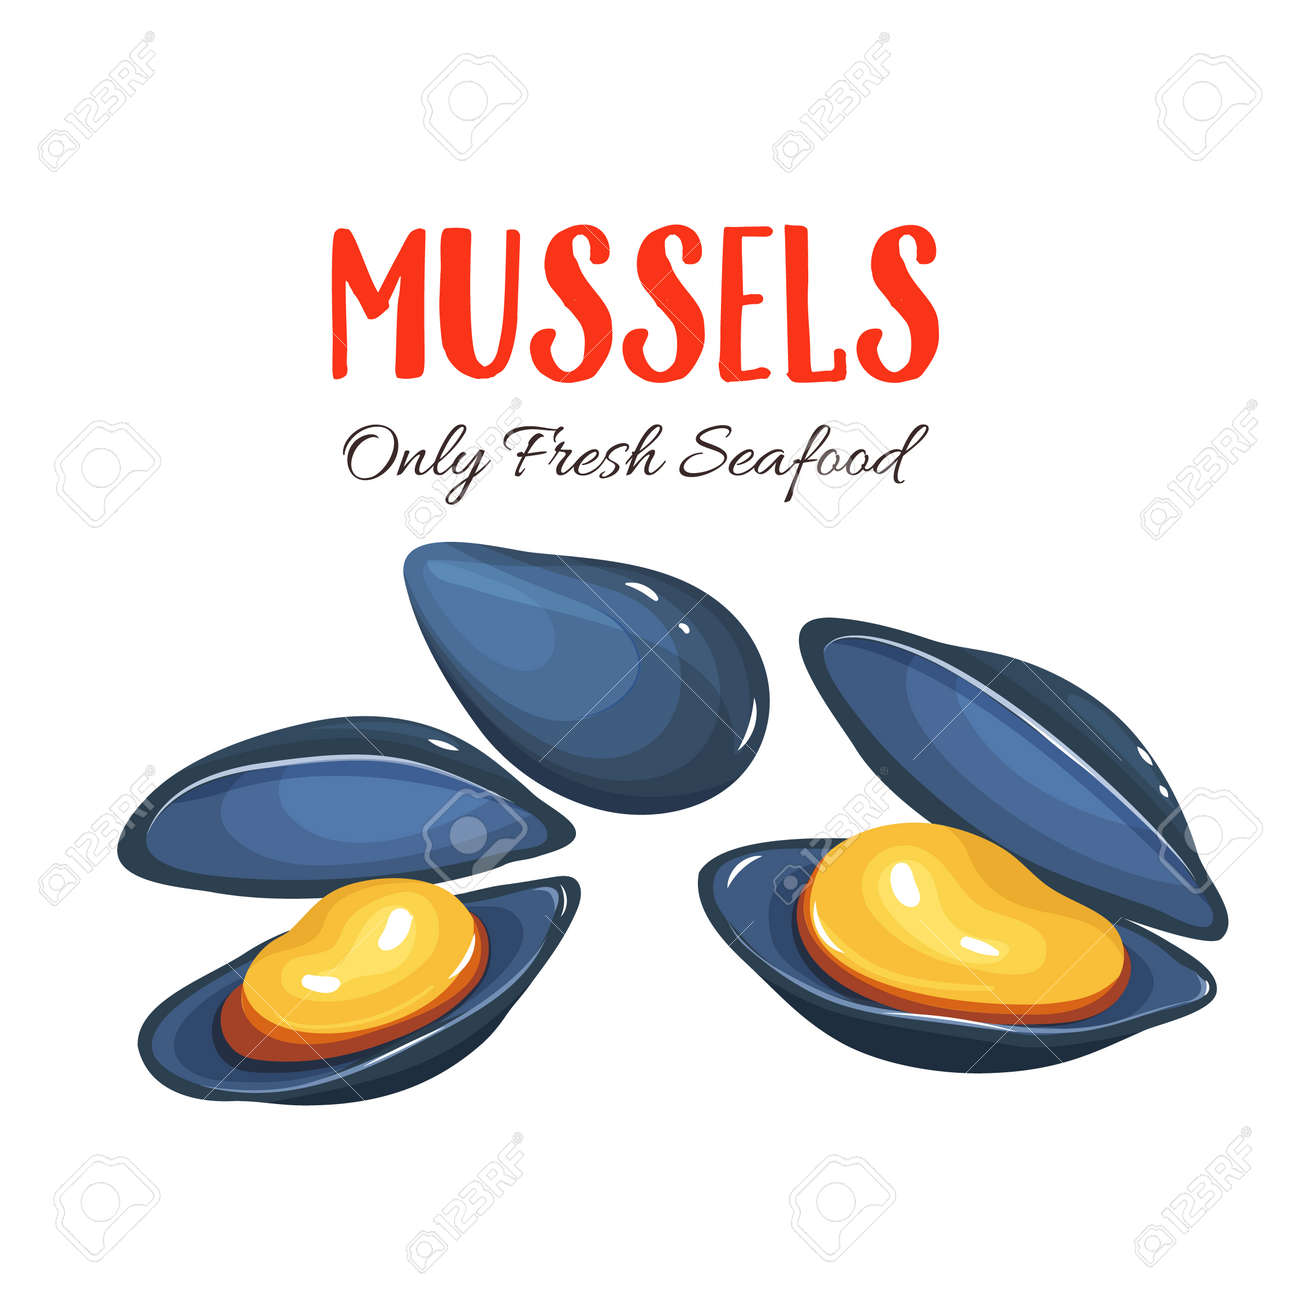 mussels vector illustration in cartoon style seafood product rh 123rf com Free Ocean Clip Art Black and White Free Clip Art Cartoon Ocean